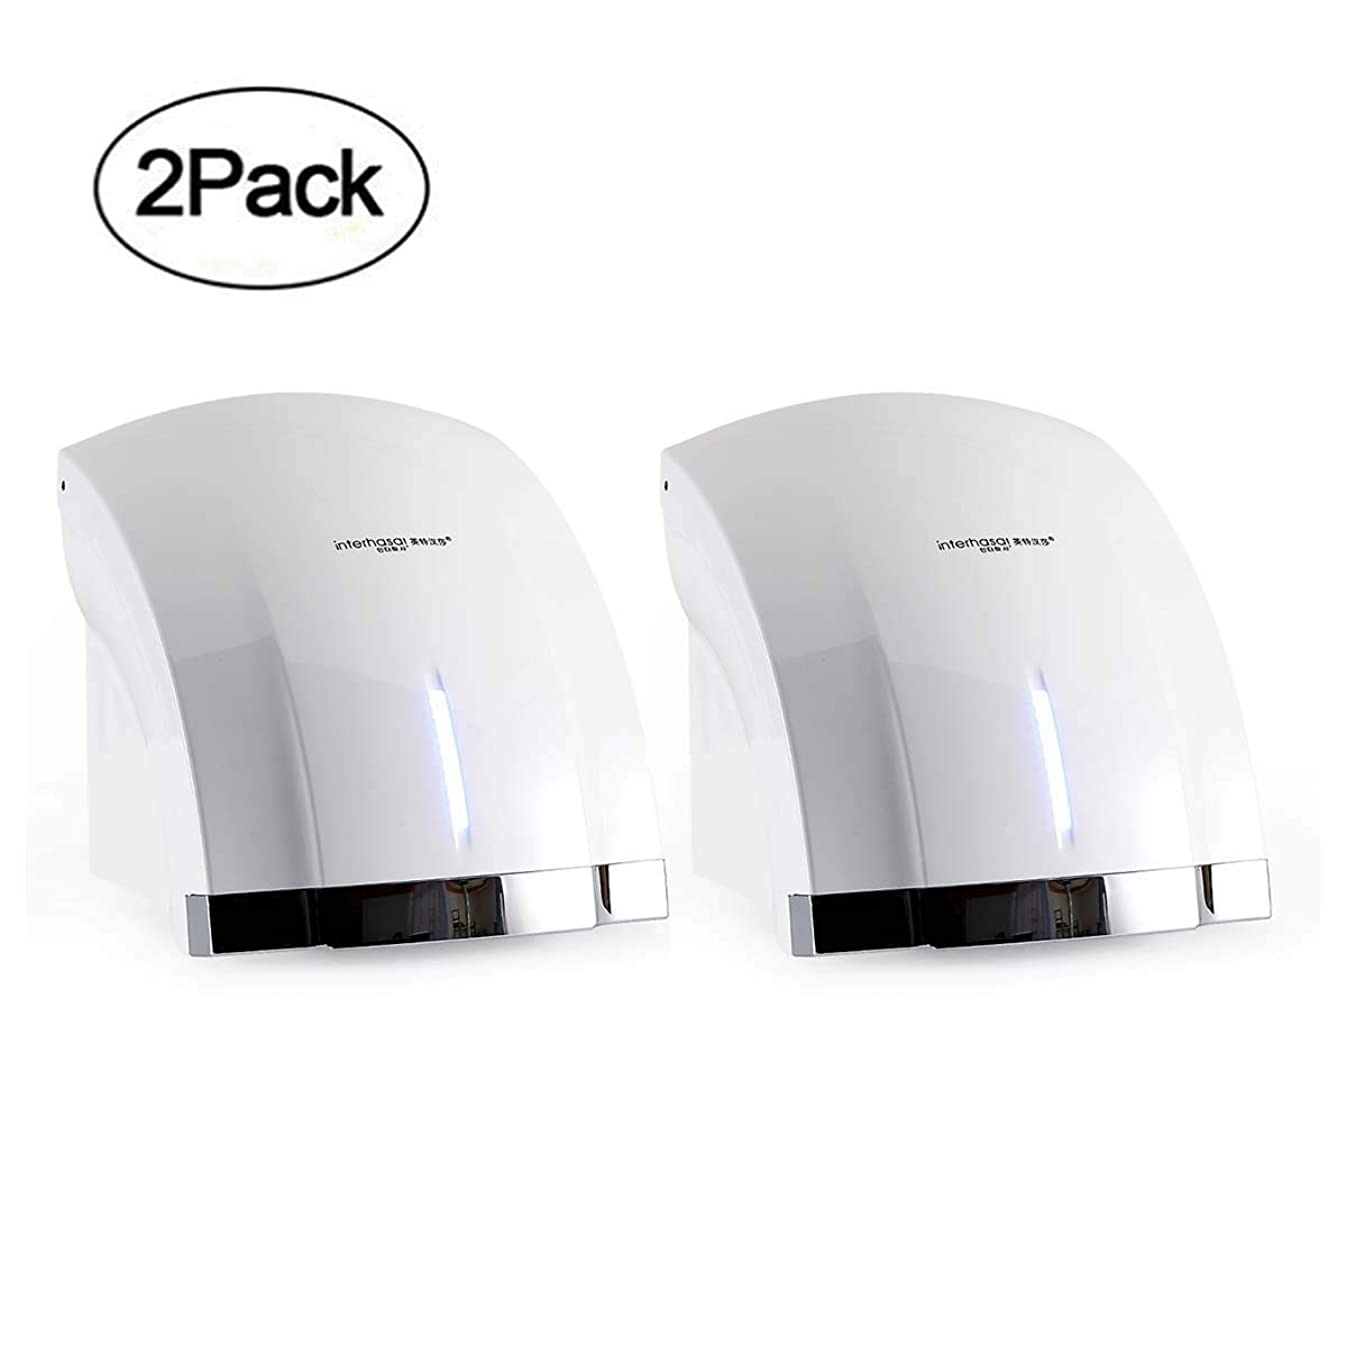 interhasa! Premium Quality High Speed 1800W Automatic Electric Commercial Hand Dryer (2 pack-110V) Color:White